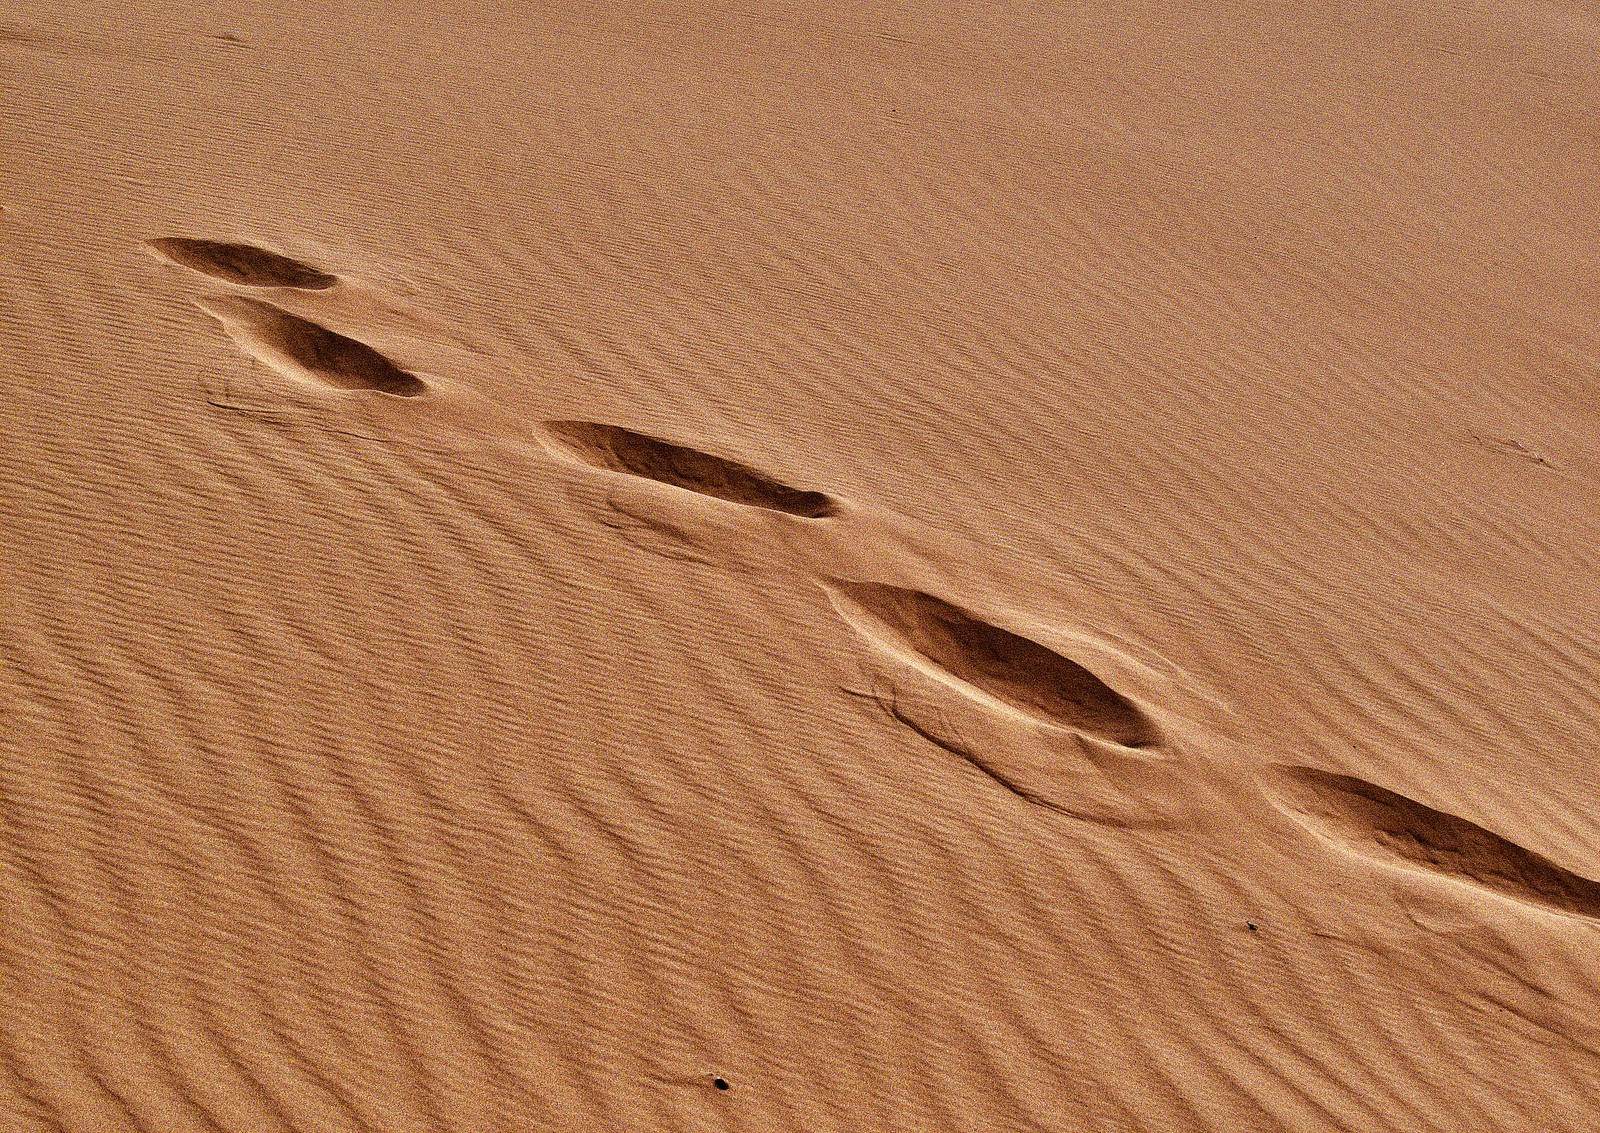 making a resume for free%0A Footprints in the Desert Sand  u     Edward Musiak  CC BY